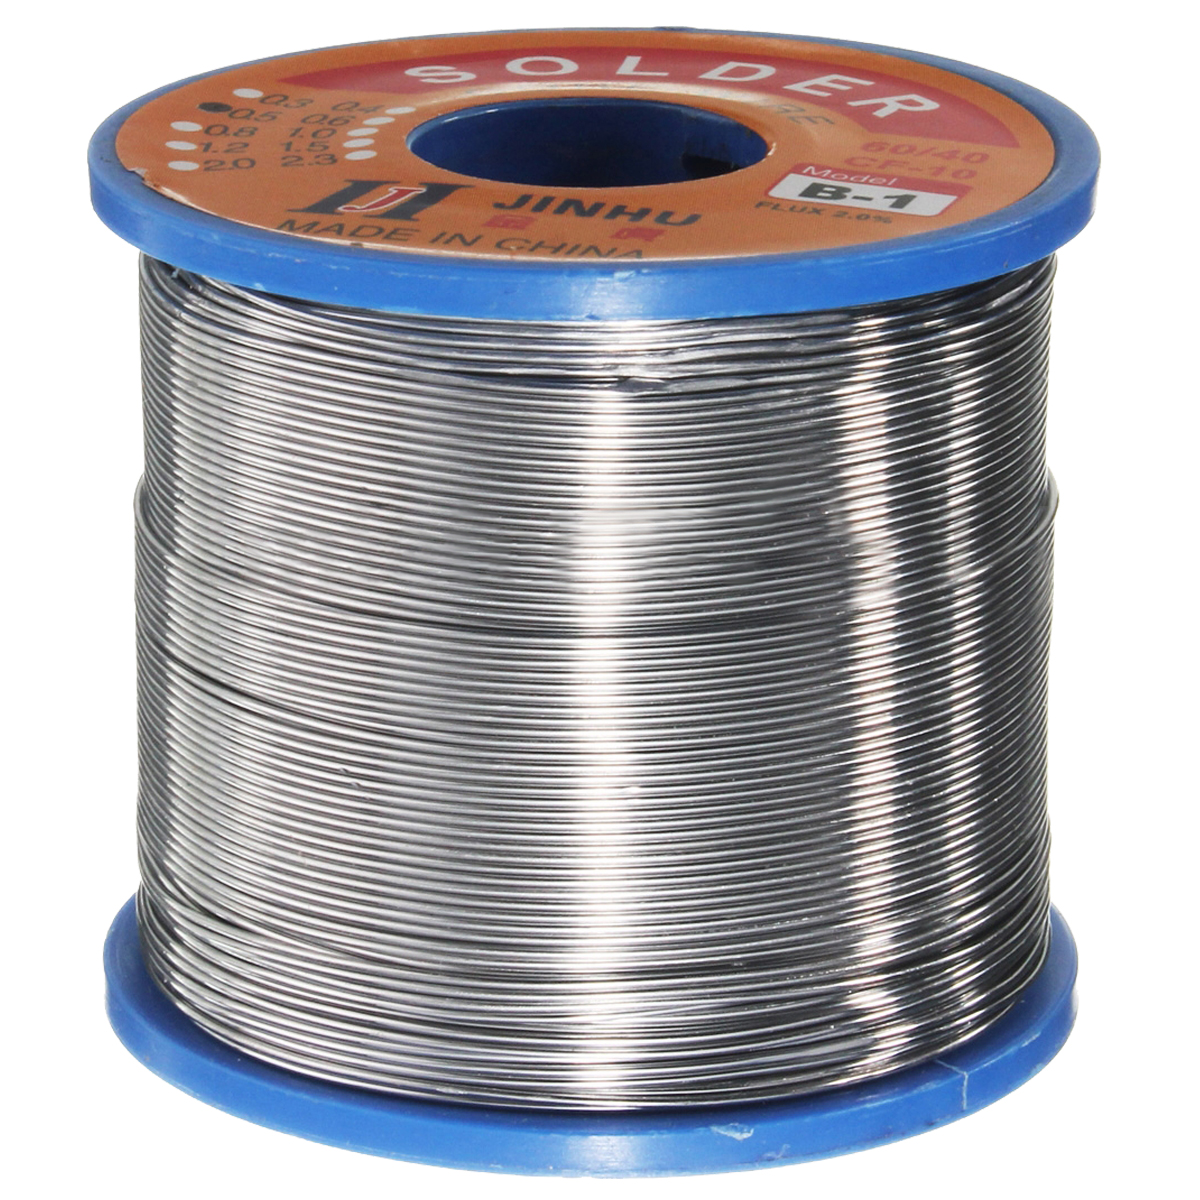 400g 60/40 Tin lead Solder Flux Wire Rosin Core Soldering Roll 0.5Mm